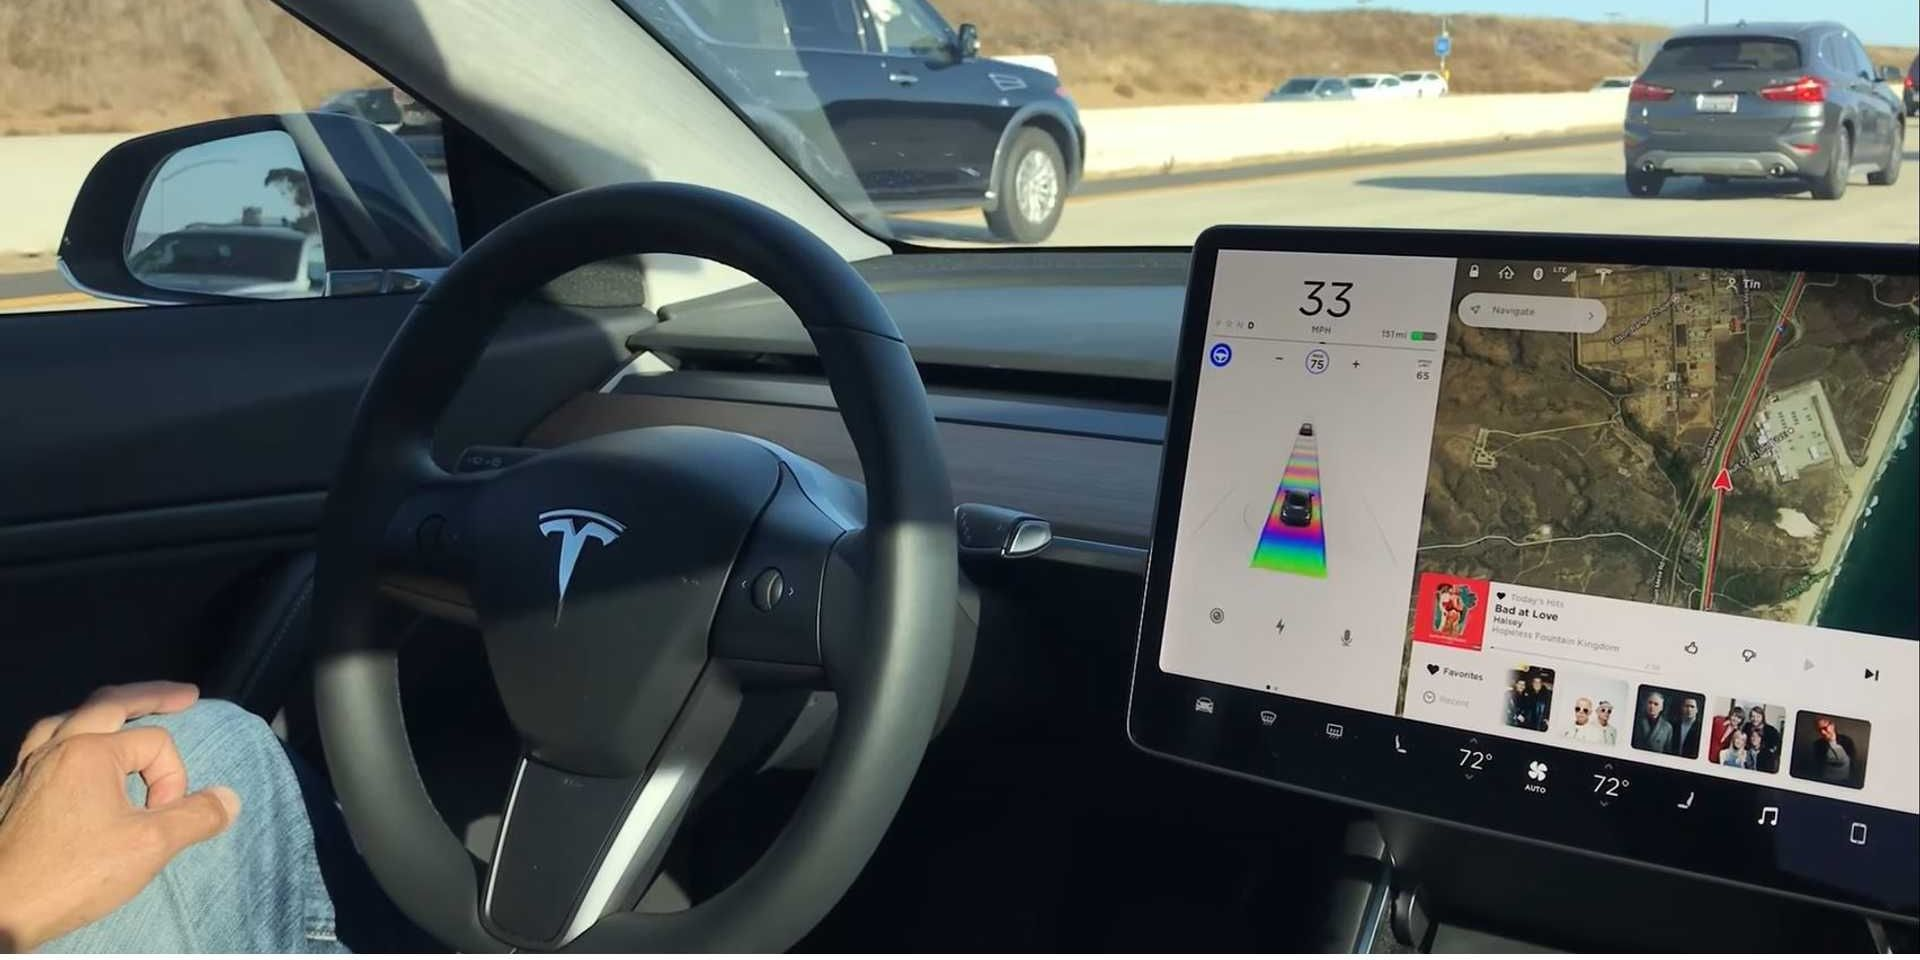 Tesla Model 3: 10 Things NOT In The Owner's Manual To Look Out For